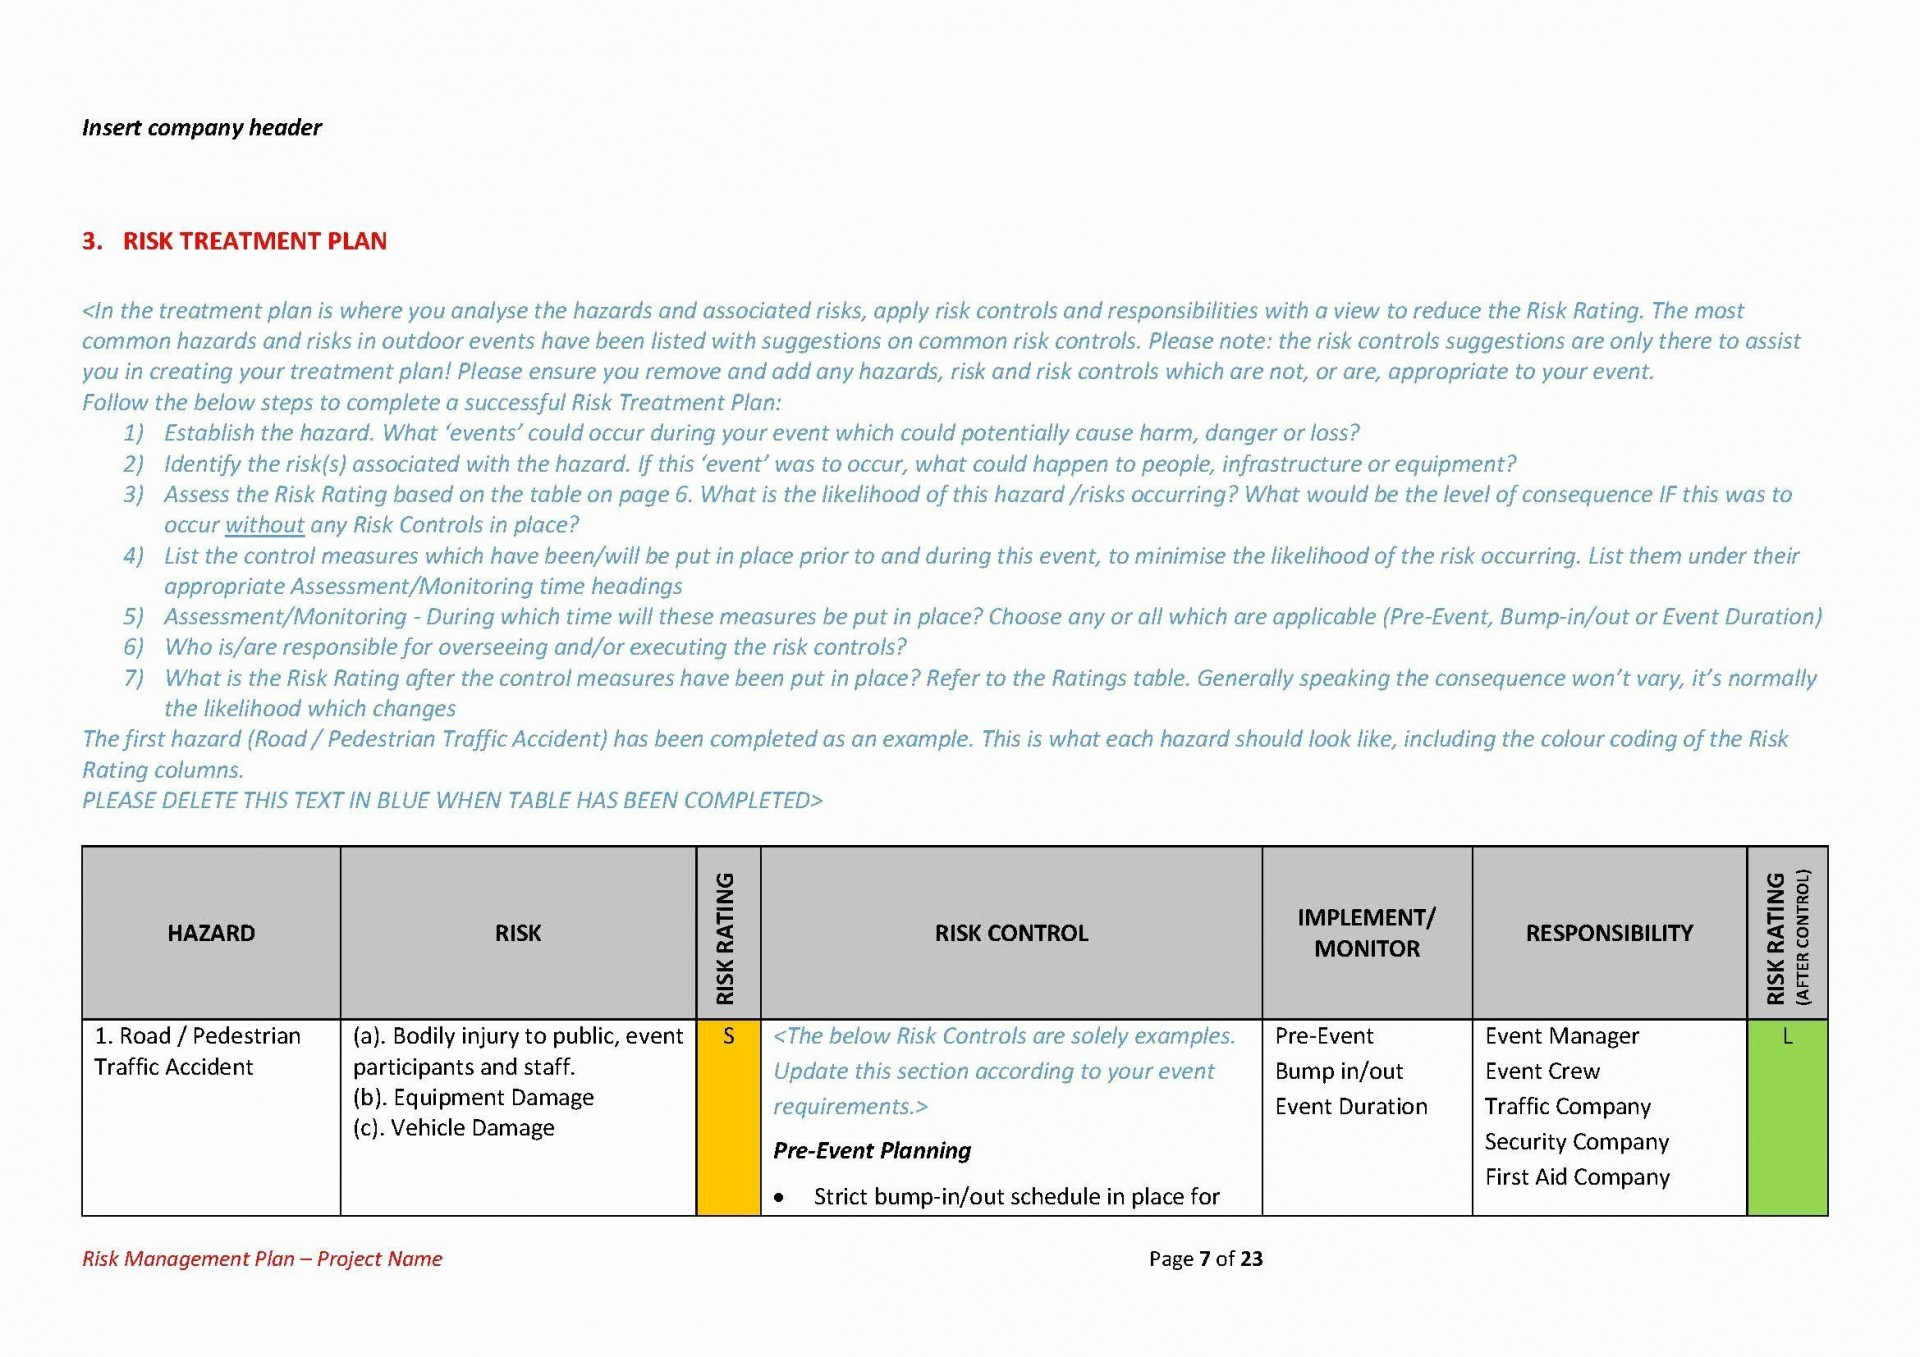 004 Surprising Project Management Plan Template Doc High Resolution  Example1920